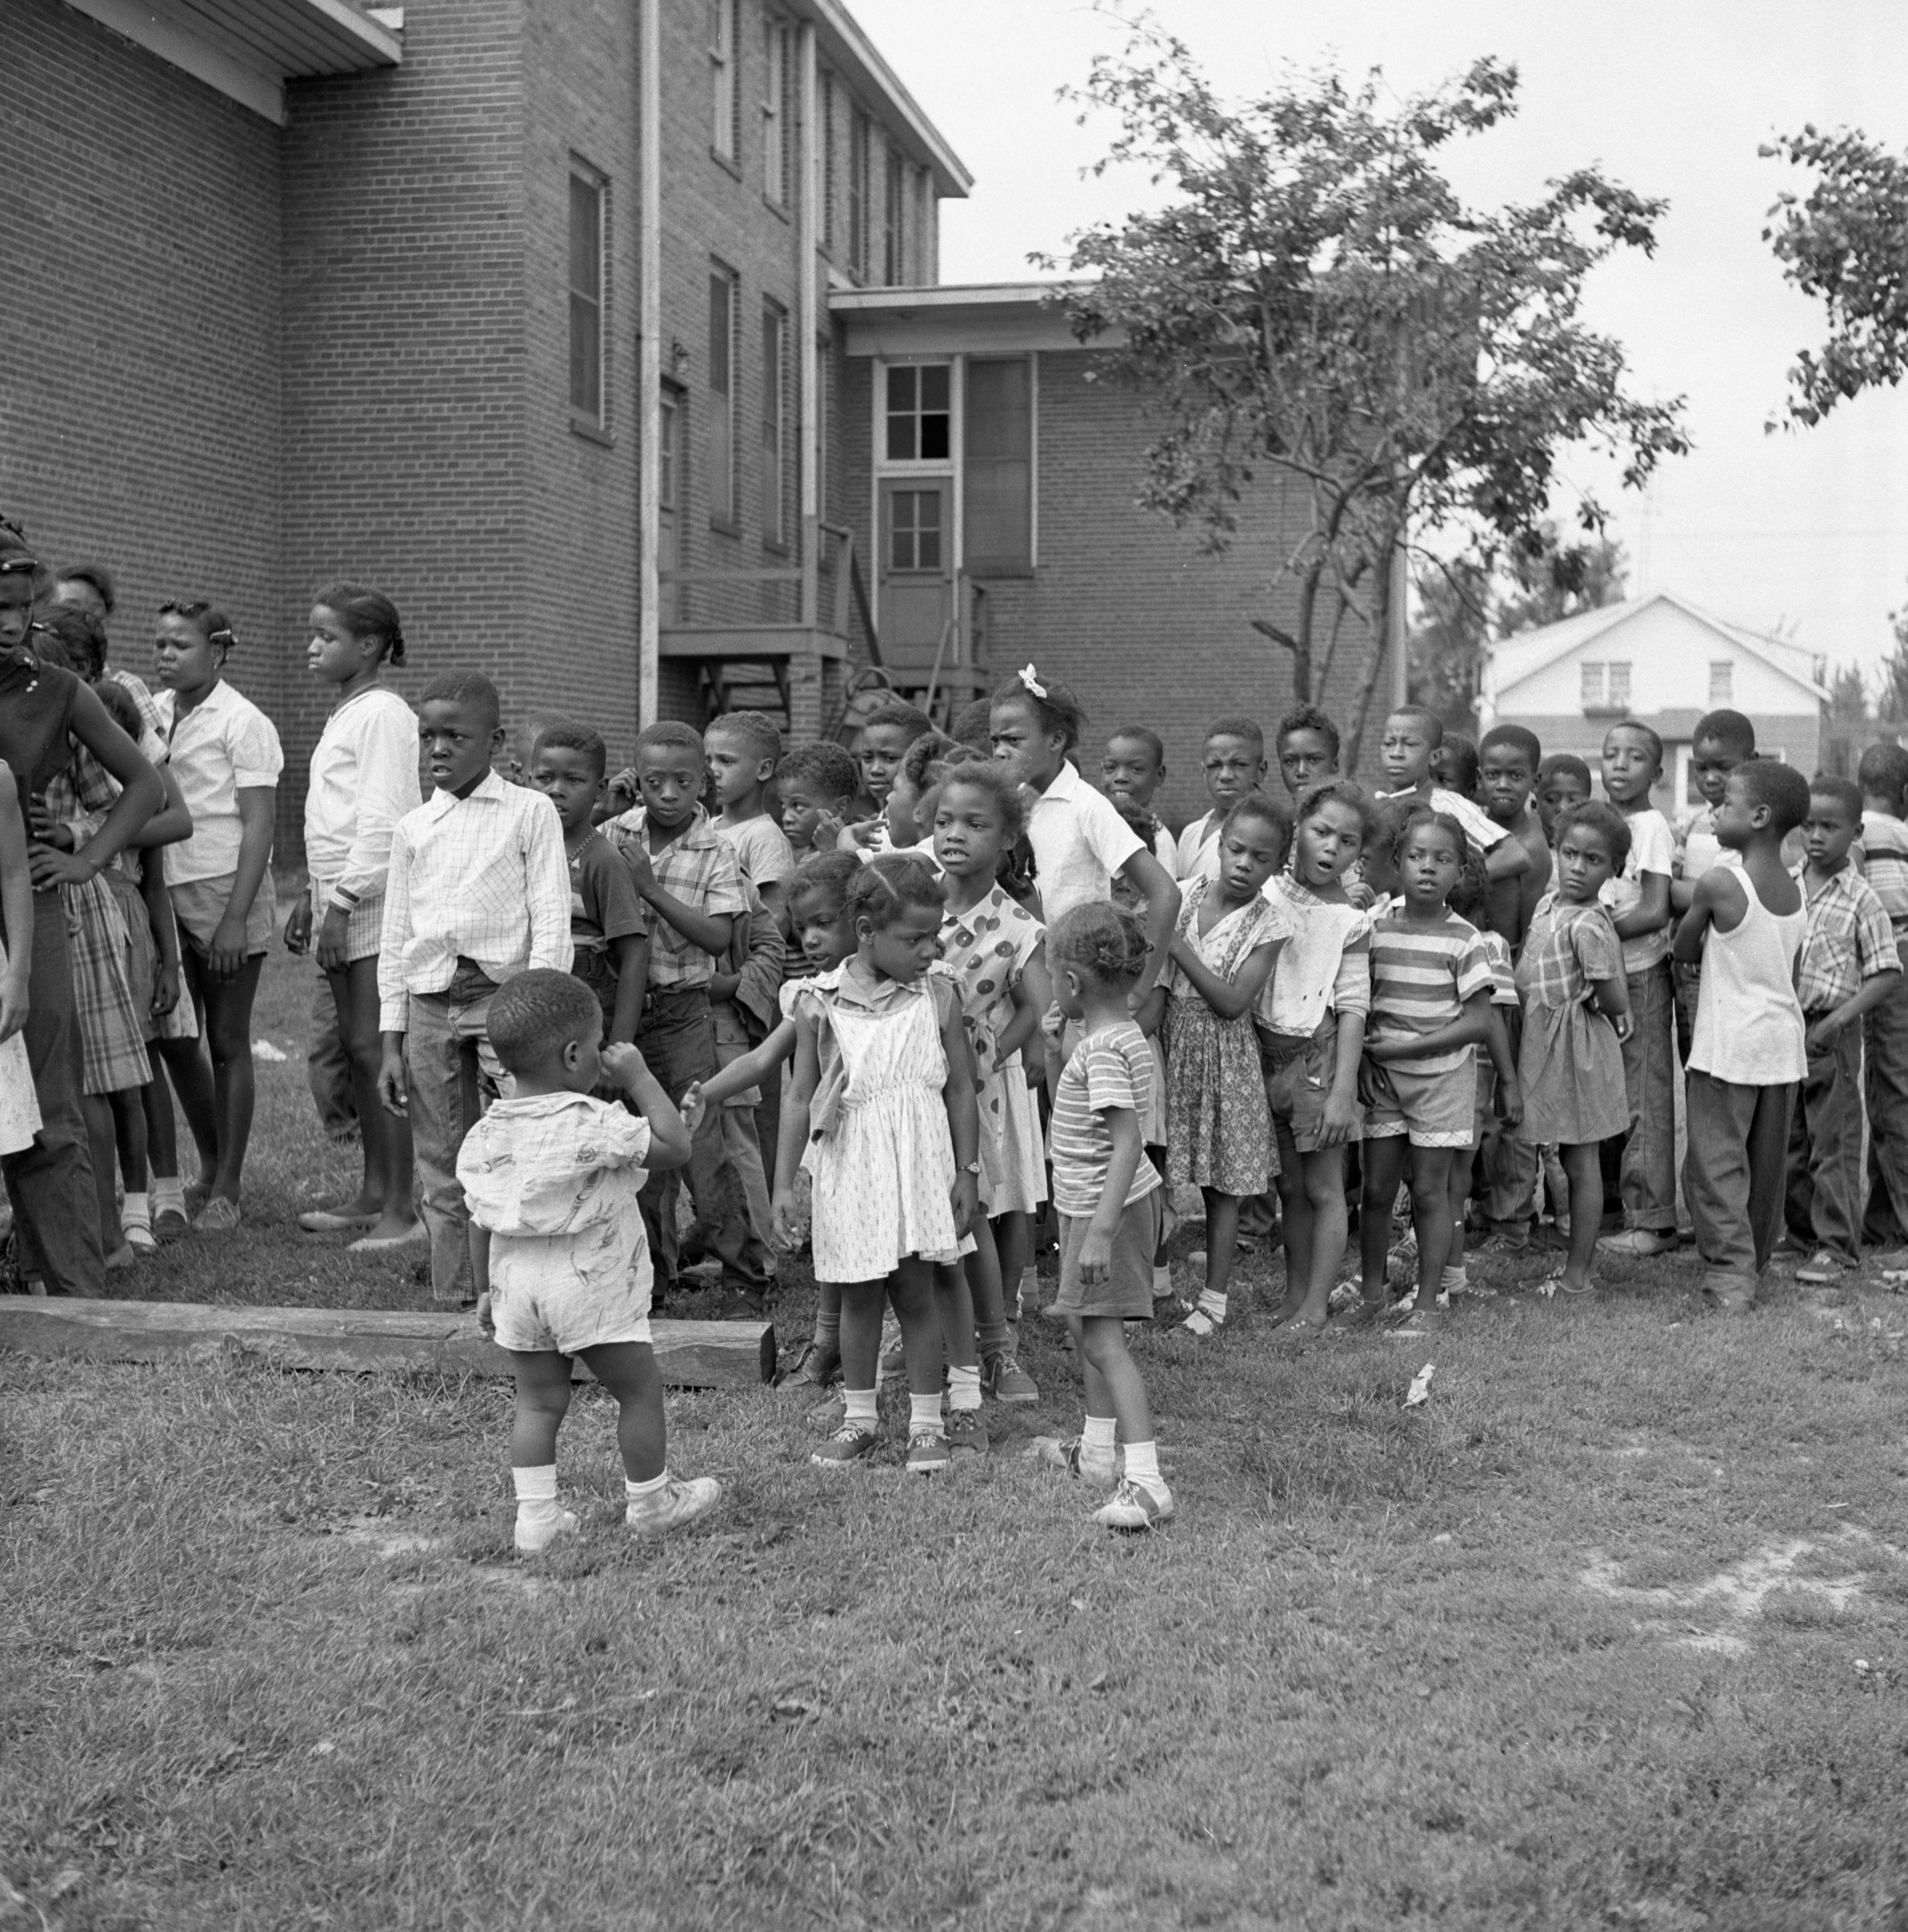 Children Gather For Public Preview Of Pump-O-Matic Merry-Go-Round At Parkridge Community Center, August 1956 image